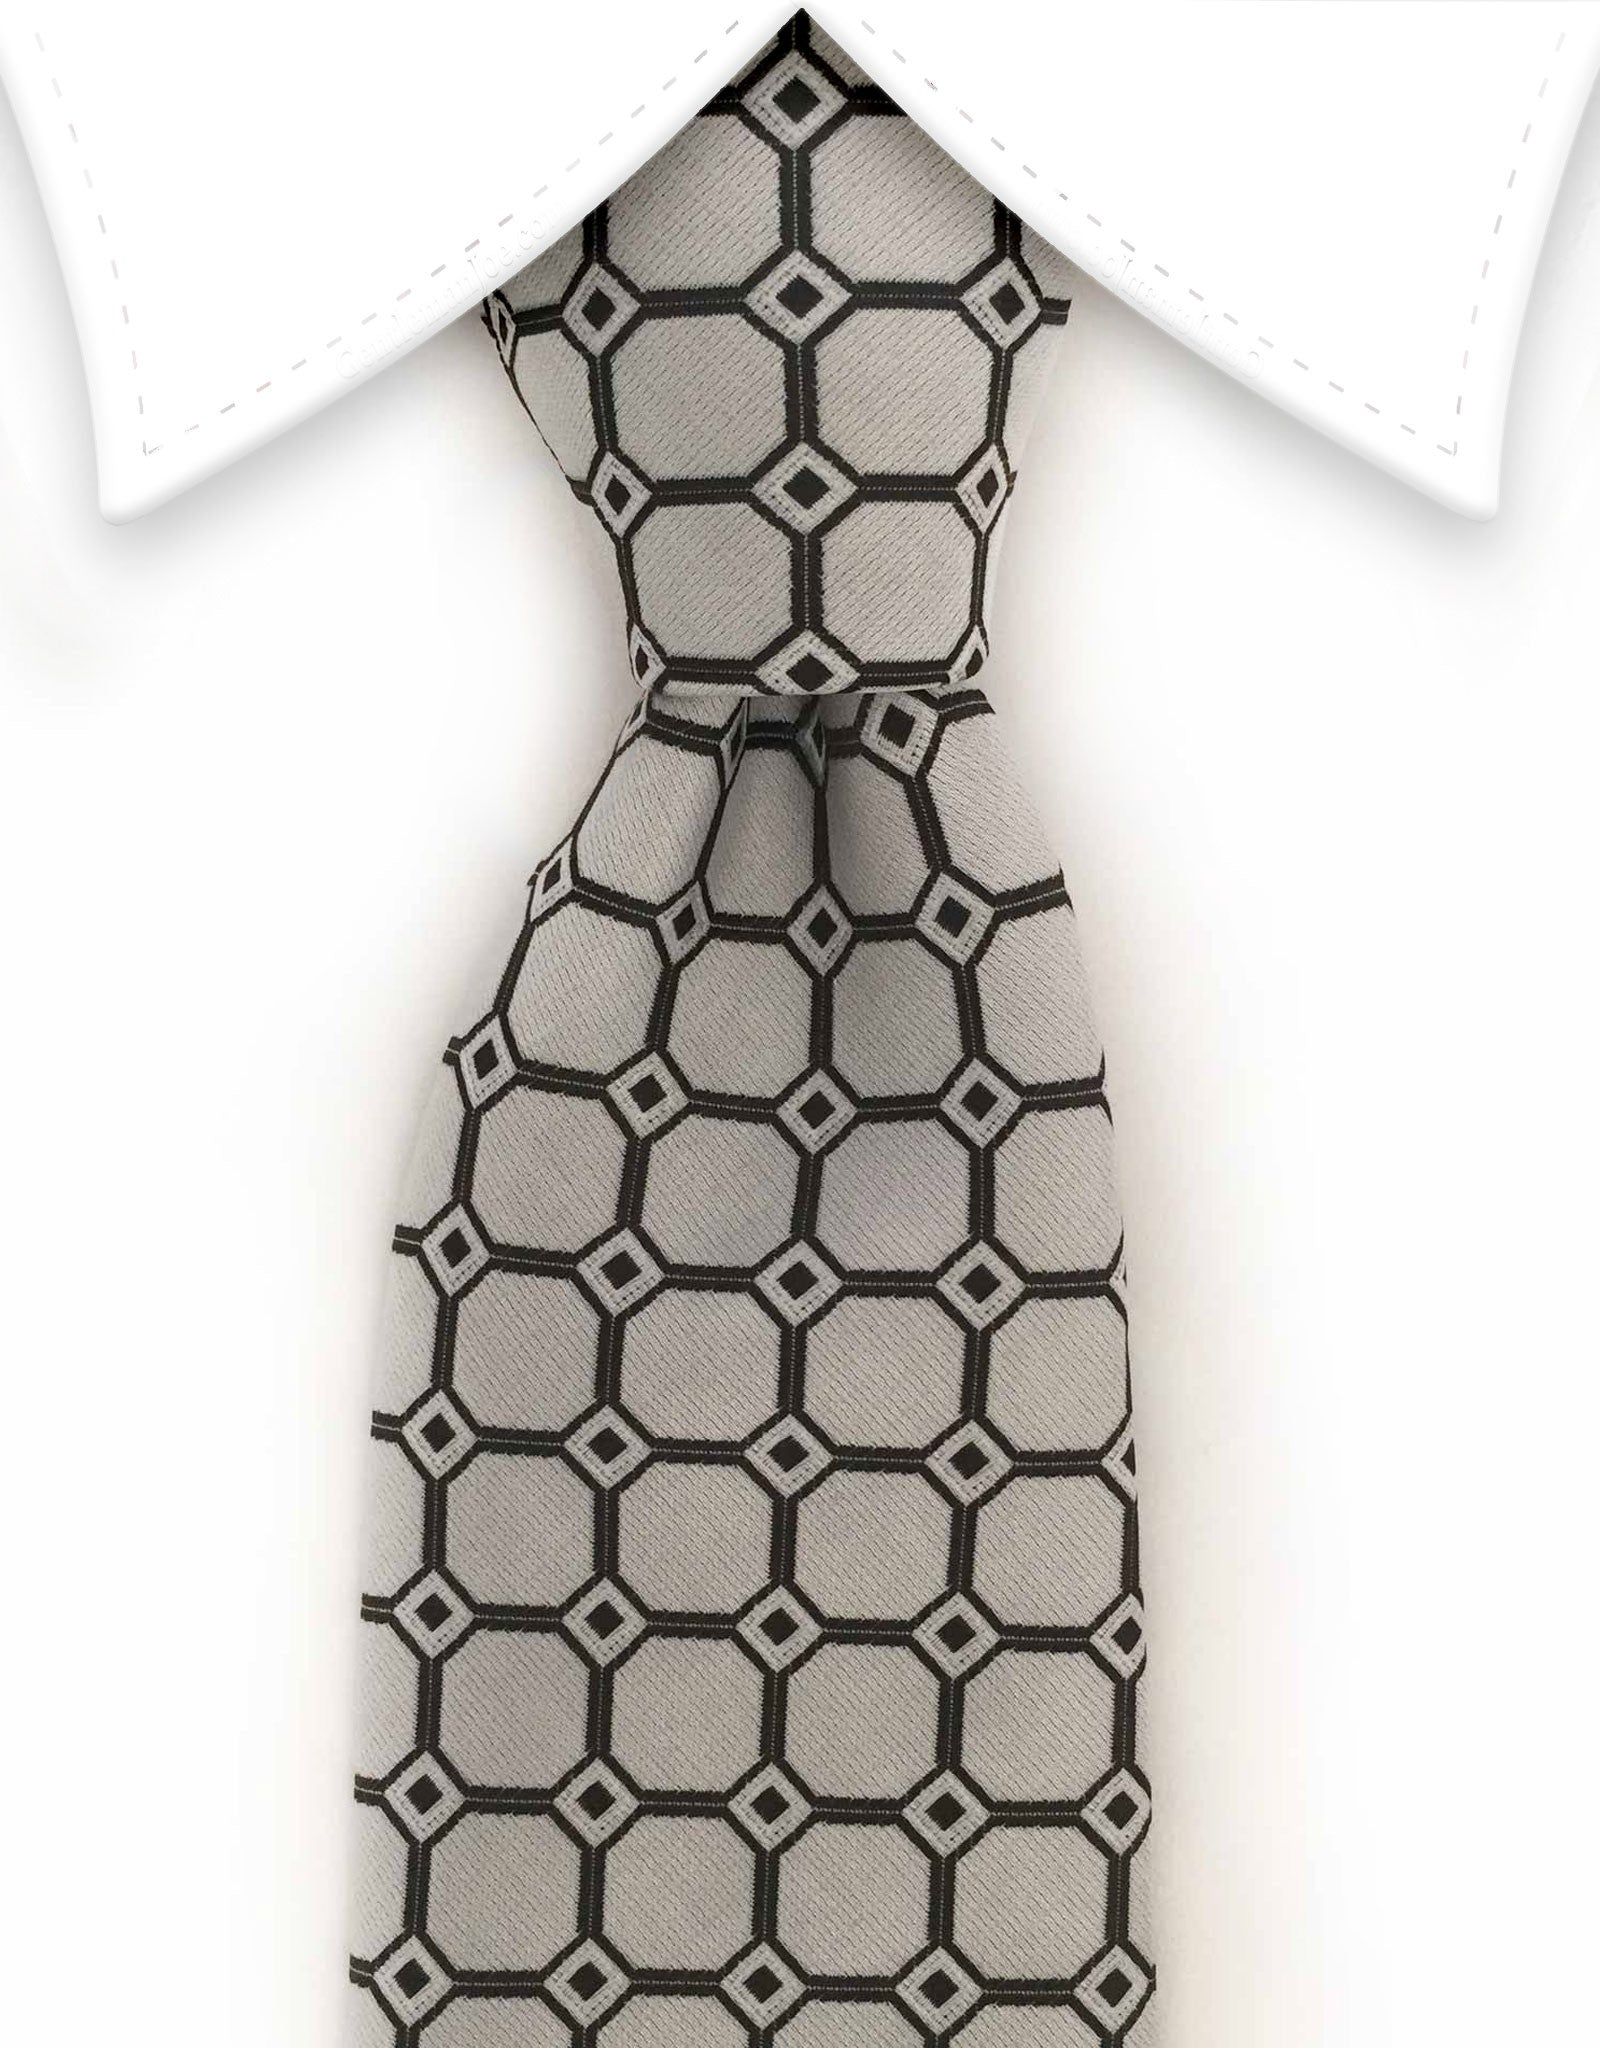 Silver Tie with black squares